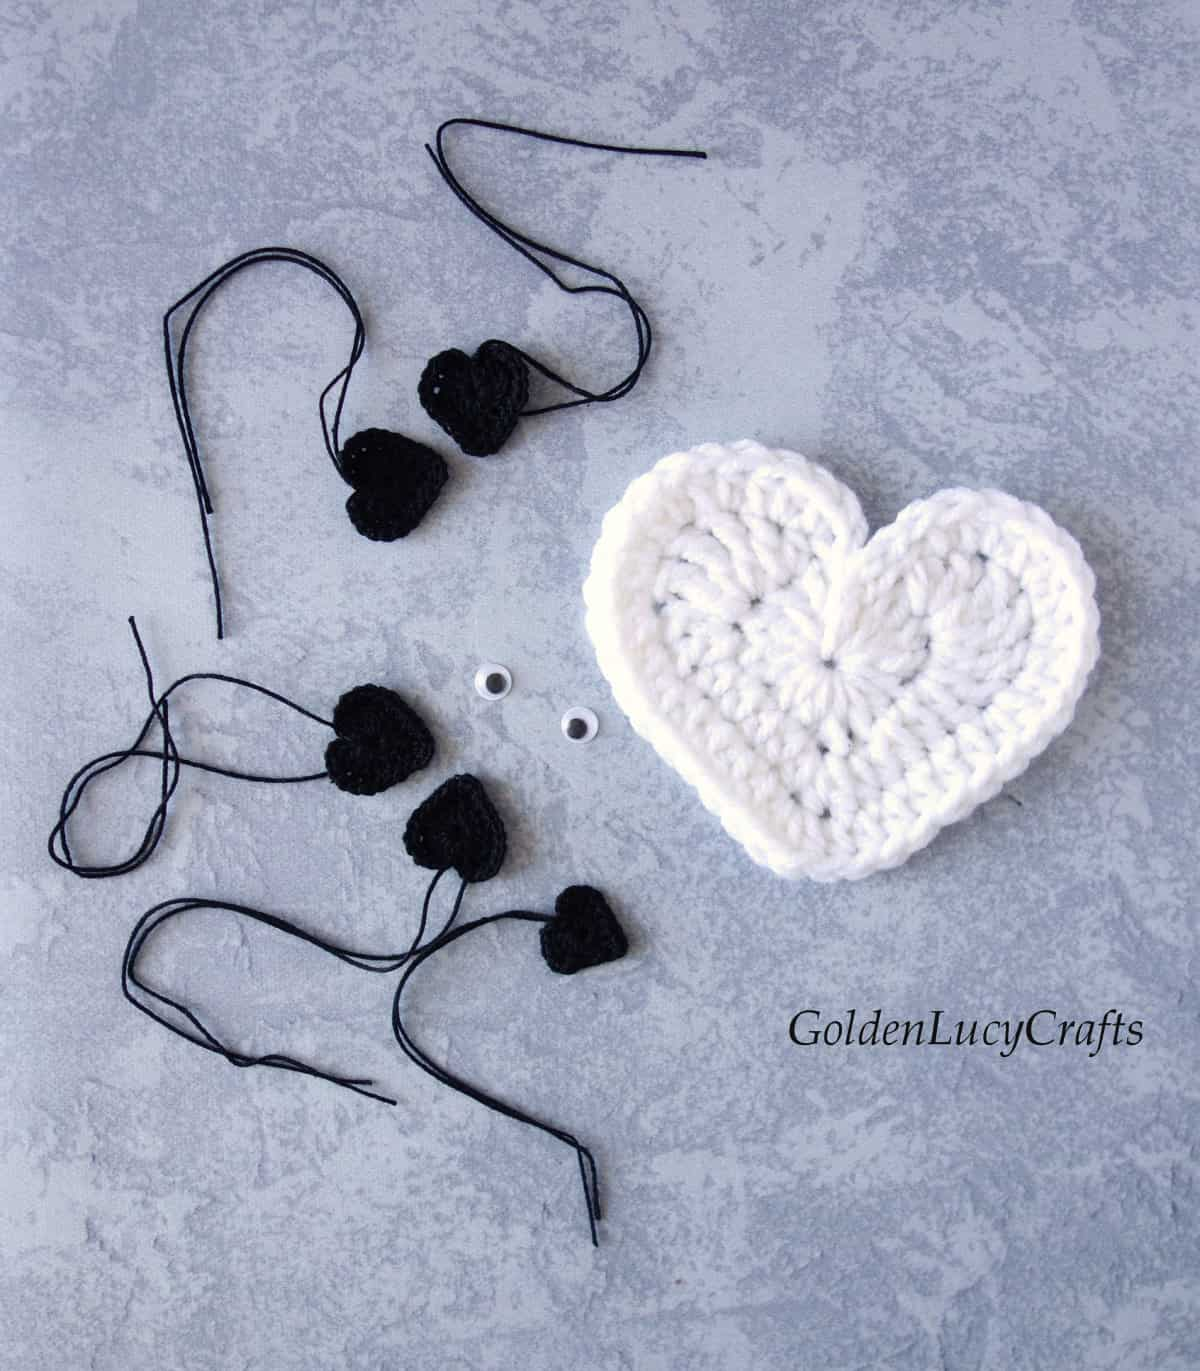 Large white crocheted heart, five small black hearts, two craft googly eyes.